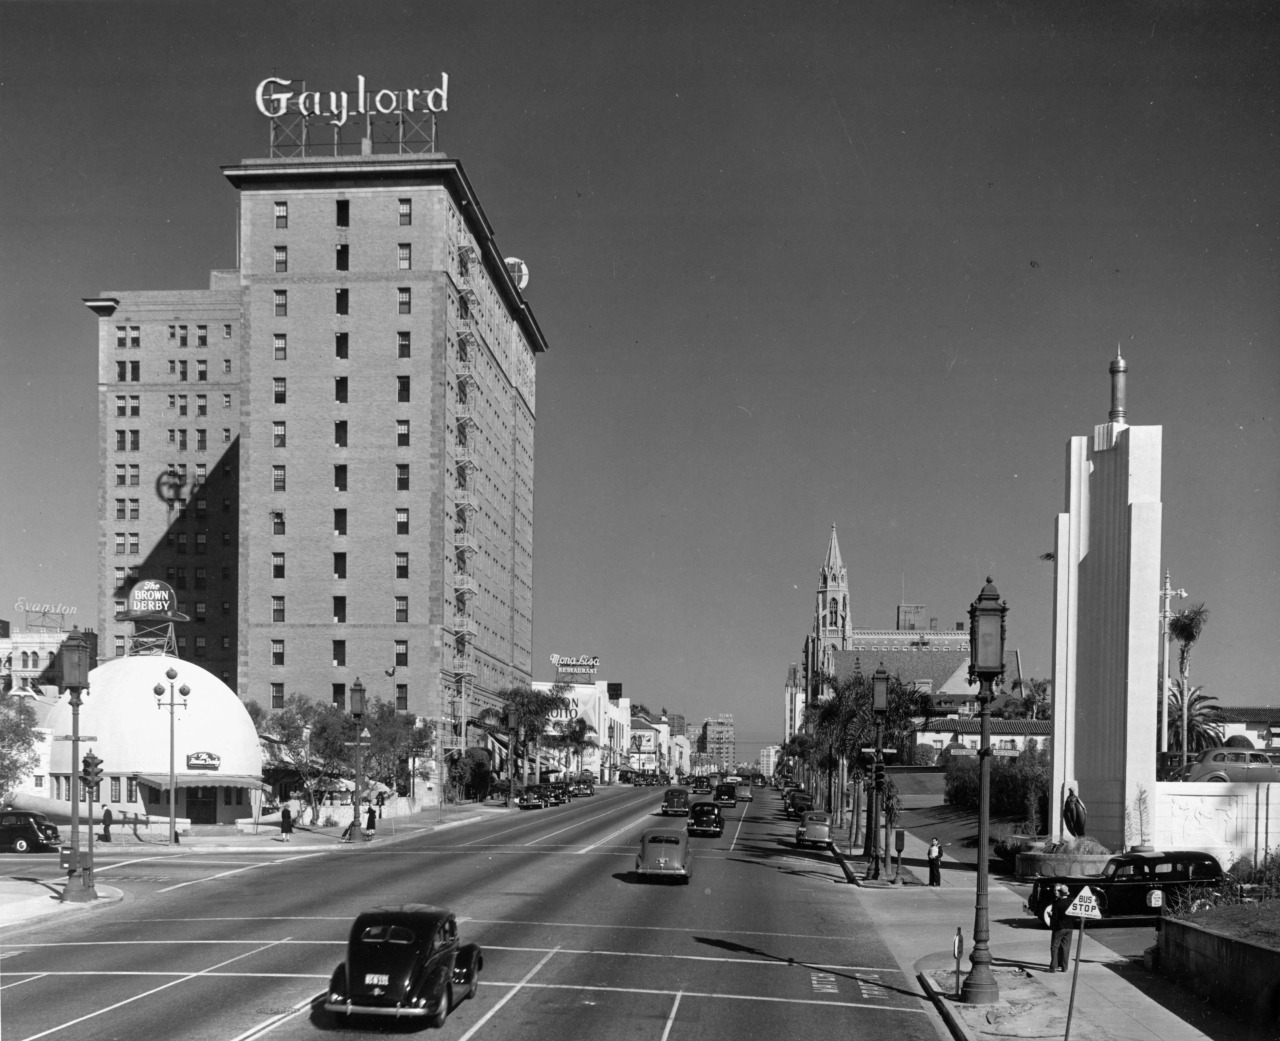 This Is A Quintessential 1930s LA View If Ever I Saw One. This Is Wilshire  Boulevard In 1936 In Which We Can See The Brown Derby, The Entrance To The  ...